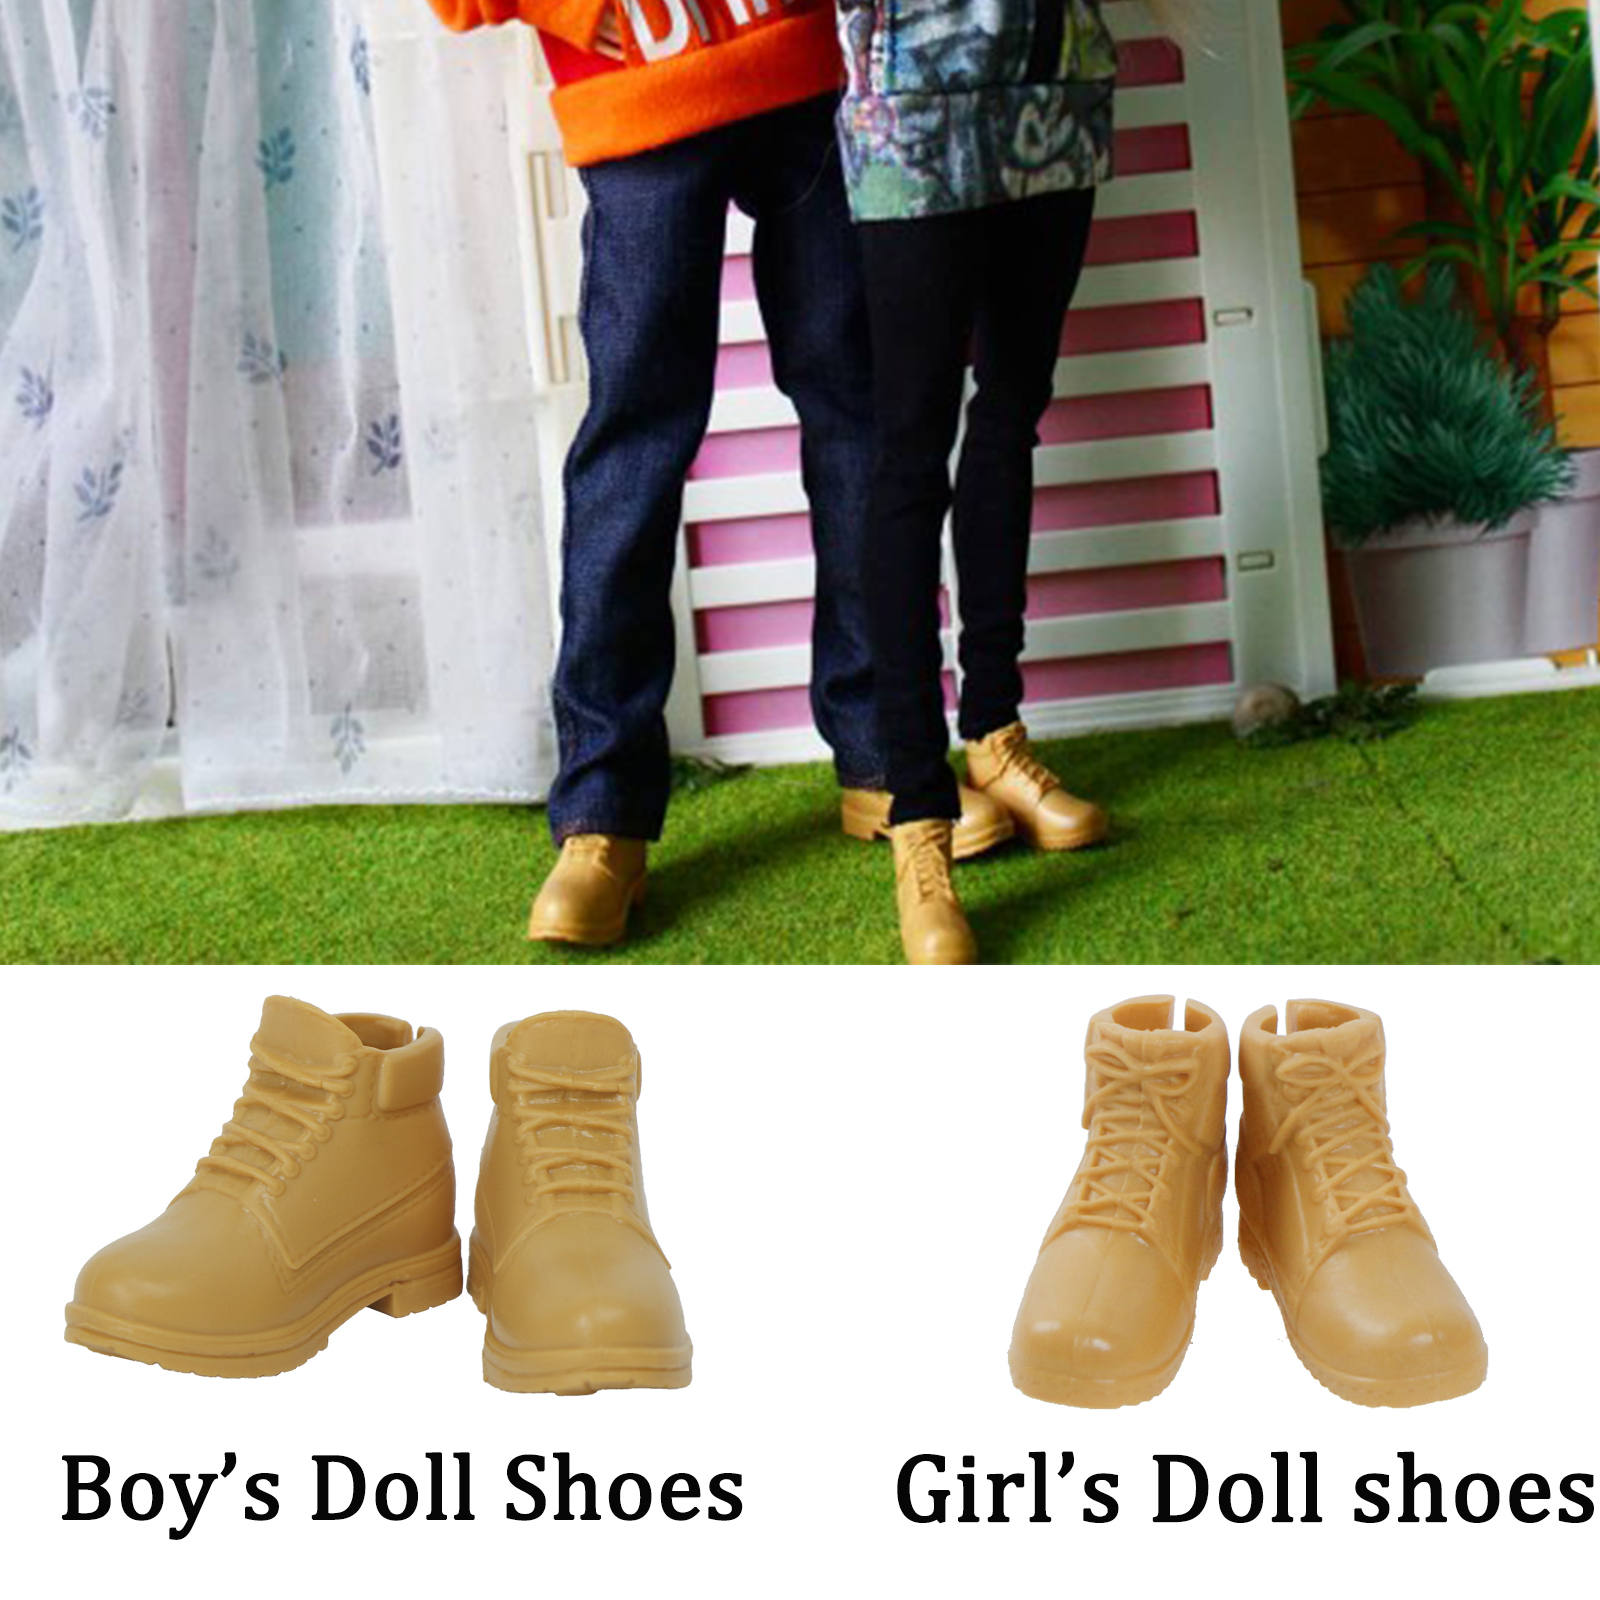 2 Pairs / Lot High Quality Doll Shoes For Barbie Doll Ken Couple Sport Shoes Yellow Flat Shoes Casual Daily Wear Accessories Toy